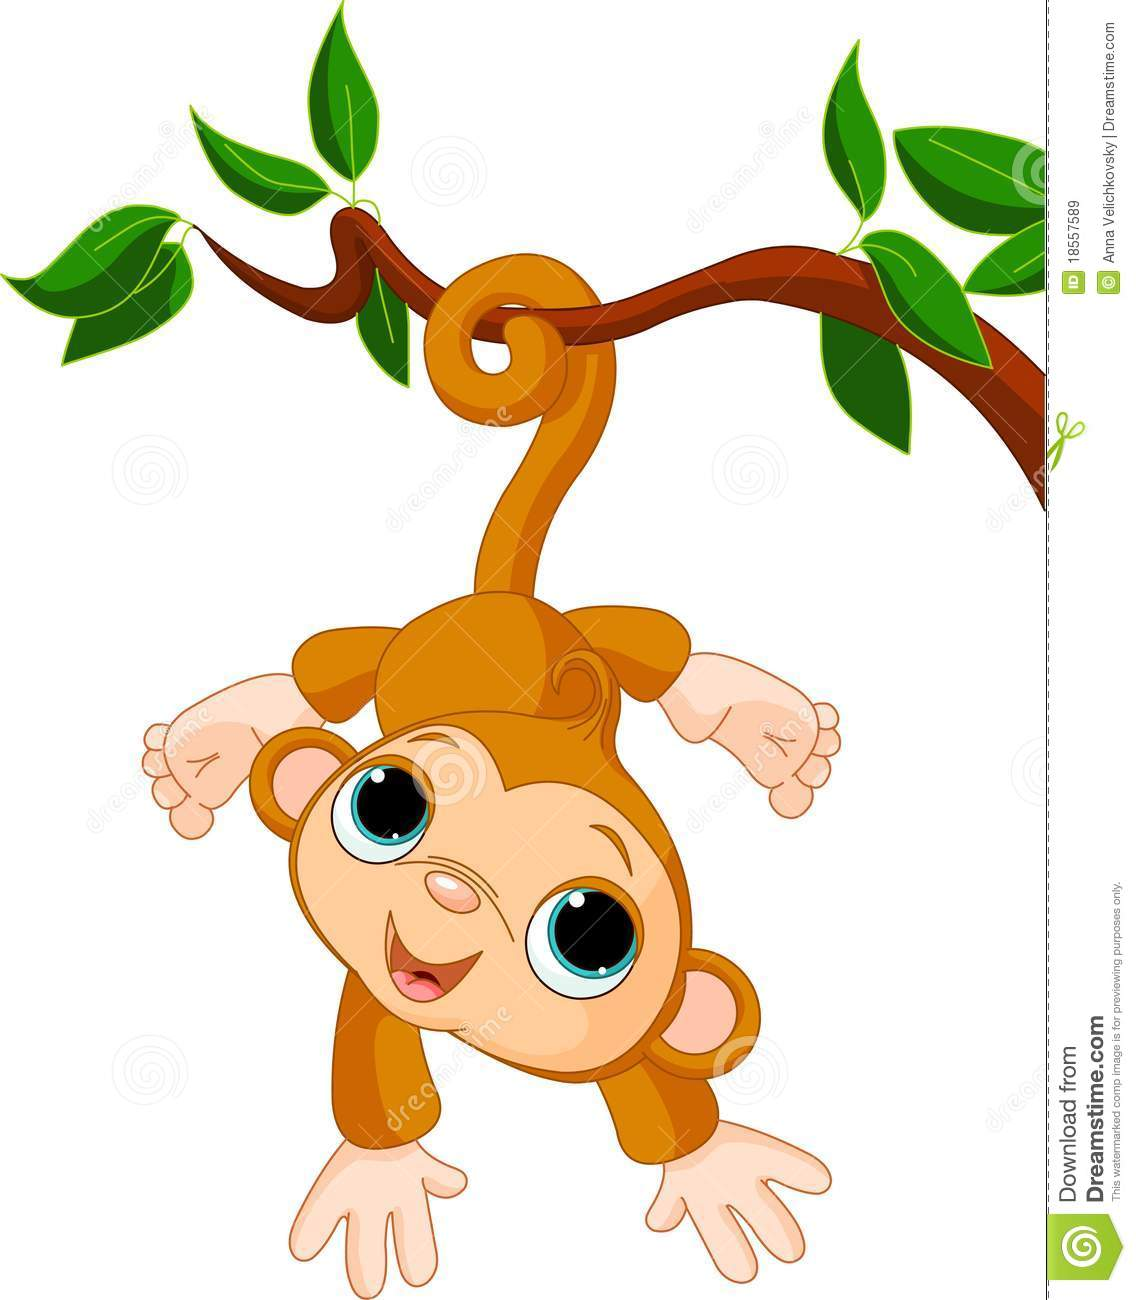 monkey in a tree clipart-monkey in a tree clipart-18